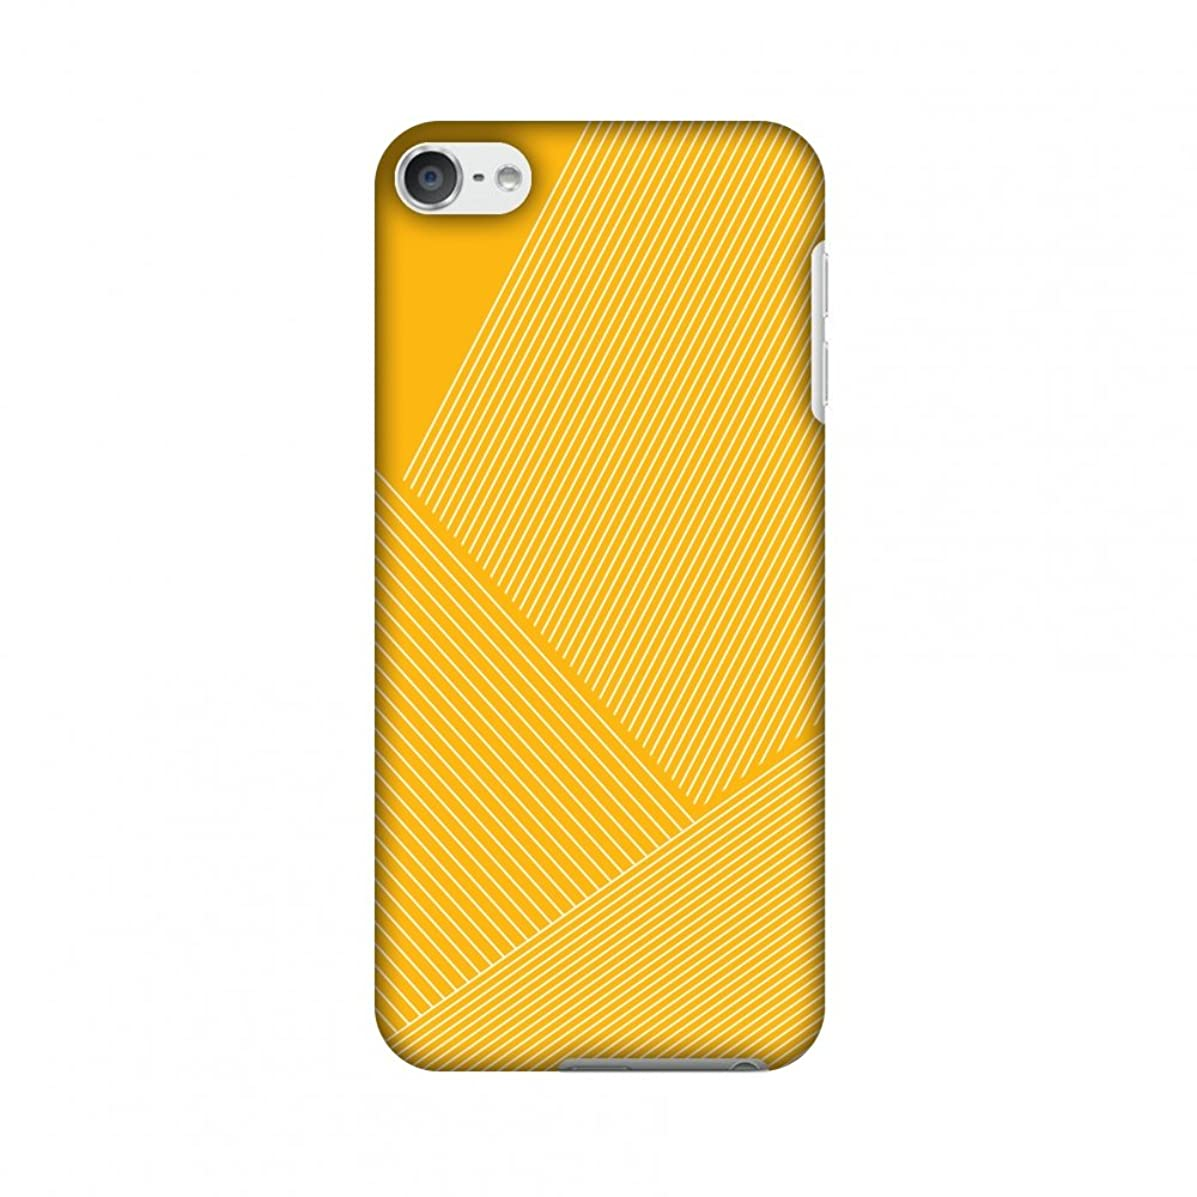 AMZER Slim Designer Snap On Hard Shell Case Back Cover with Screen Care Kit for iPod Touch 6th Gen - Carbon Fibre Redux Cyber Yellow 1